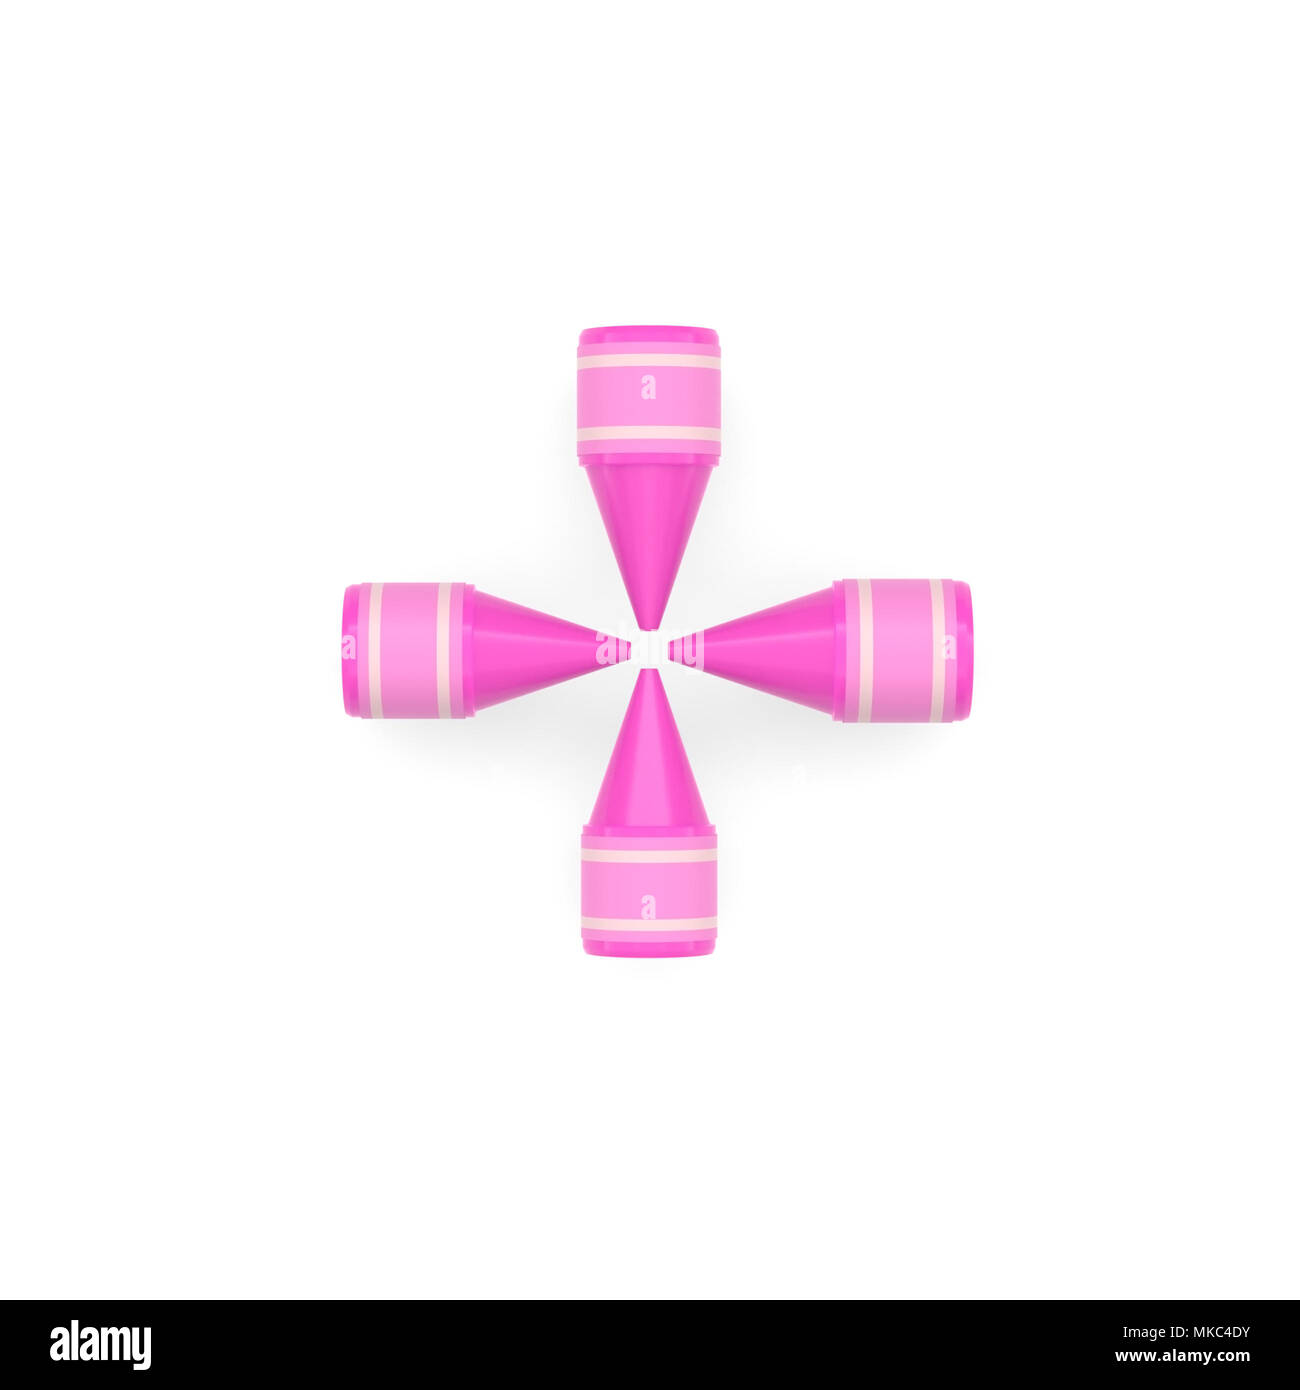 Pink Wax Crayon Mathematical Operation Symbol Of Sum Or Addition On